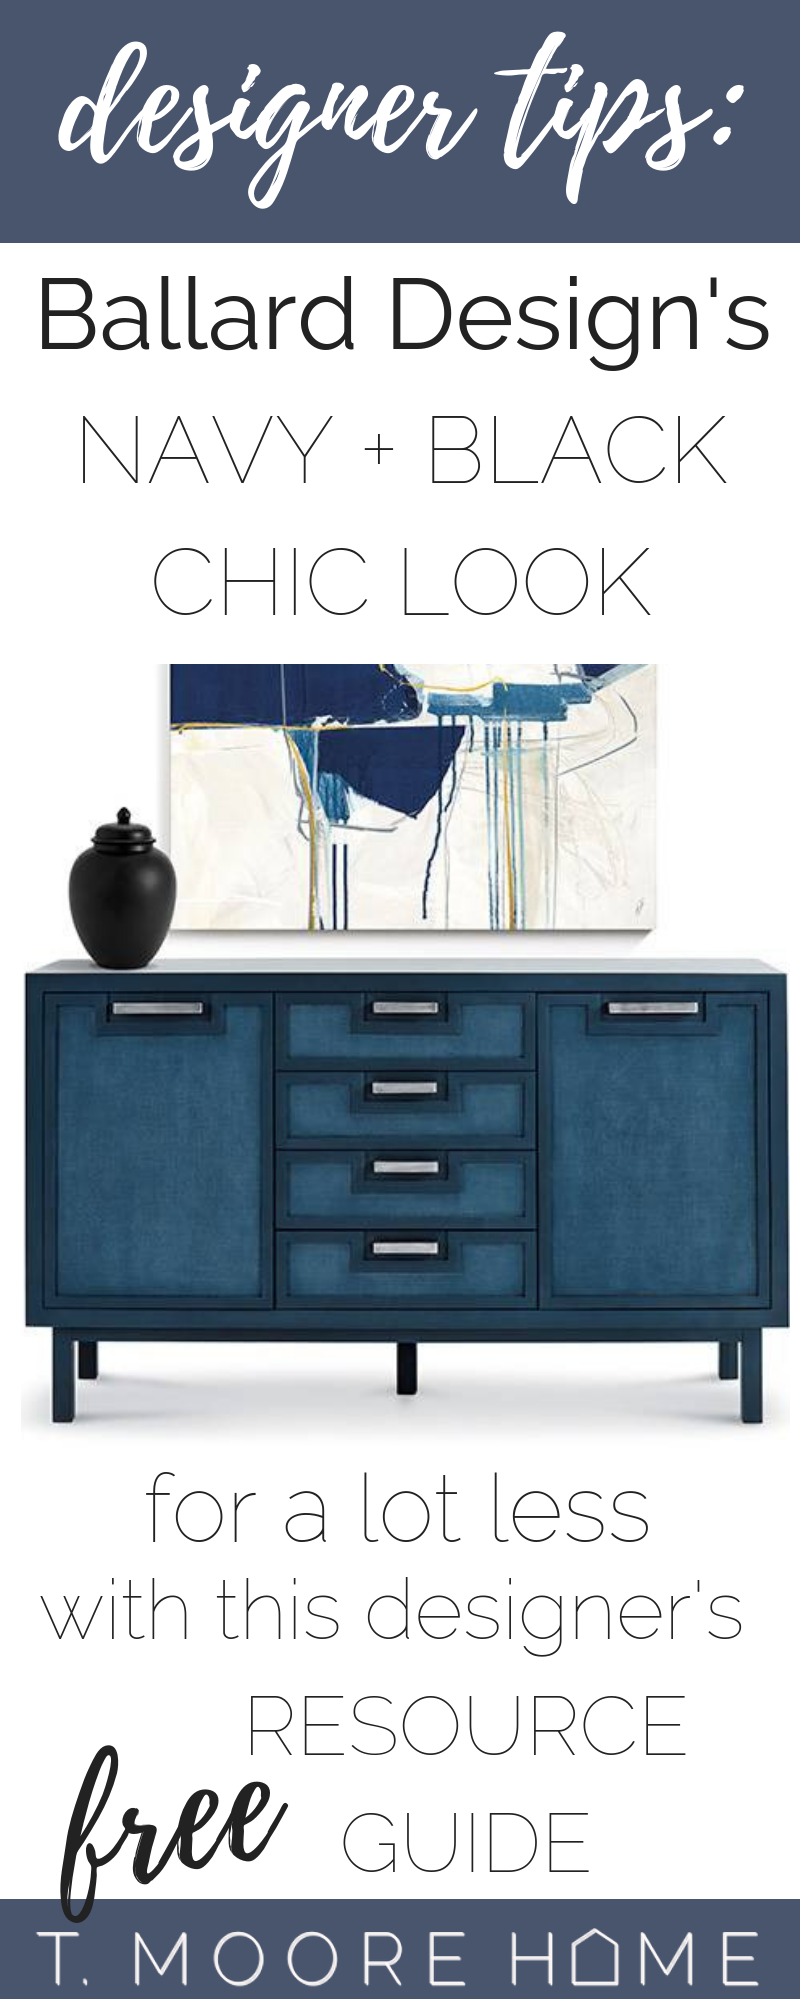 Top DIY Home Decor Posts of 2018 Revealed | Ballard Designs Navy + Black: The Look For Less Series explores designer looks and rooms and shows you how you can replicate the look on a budget. You guys loved these and I promise to bring them back in 2019.